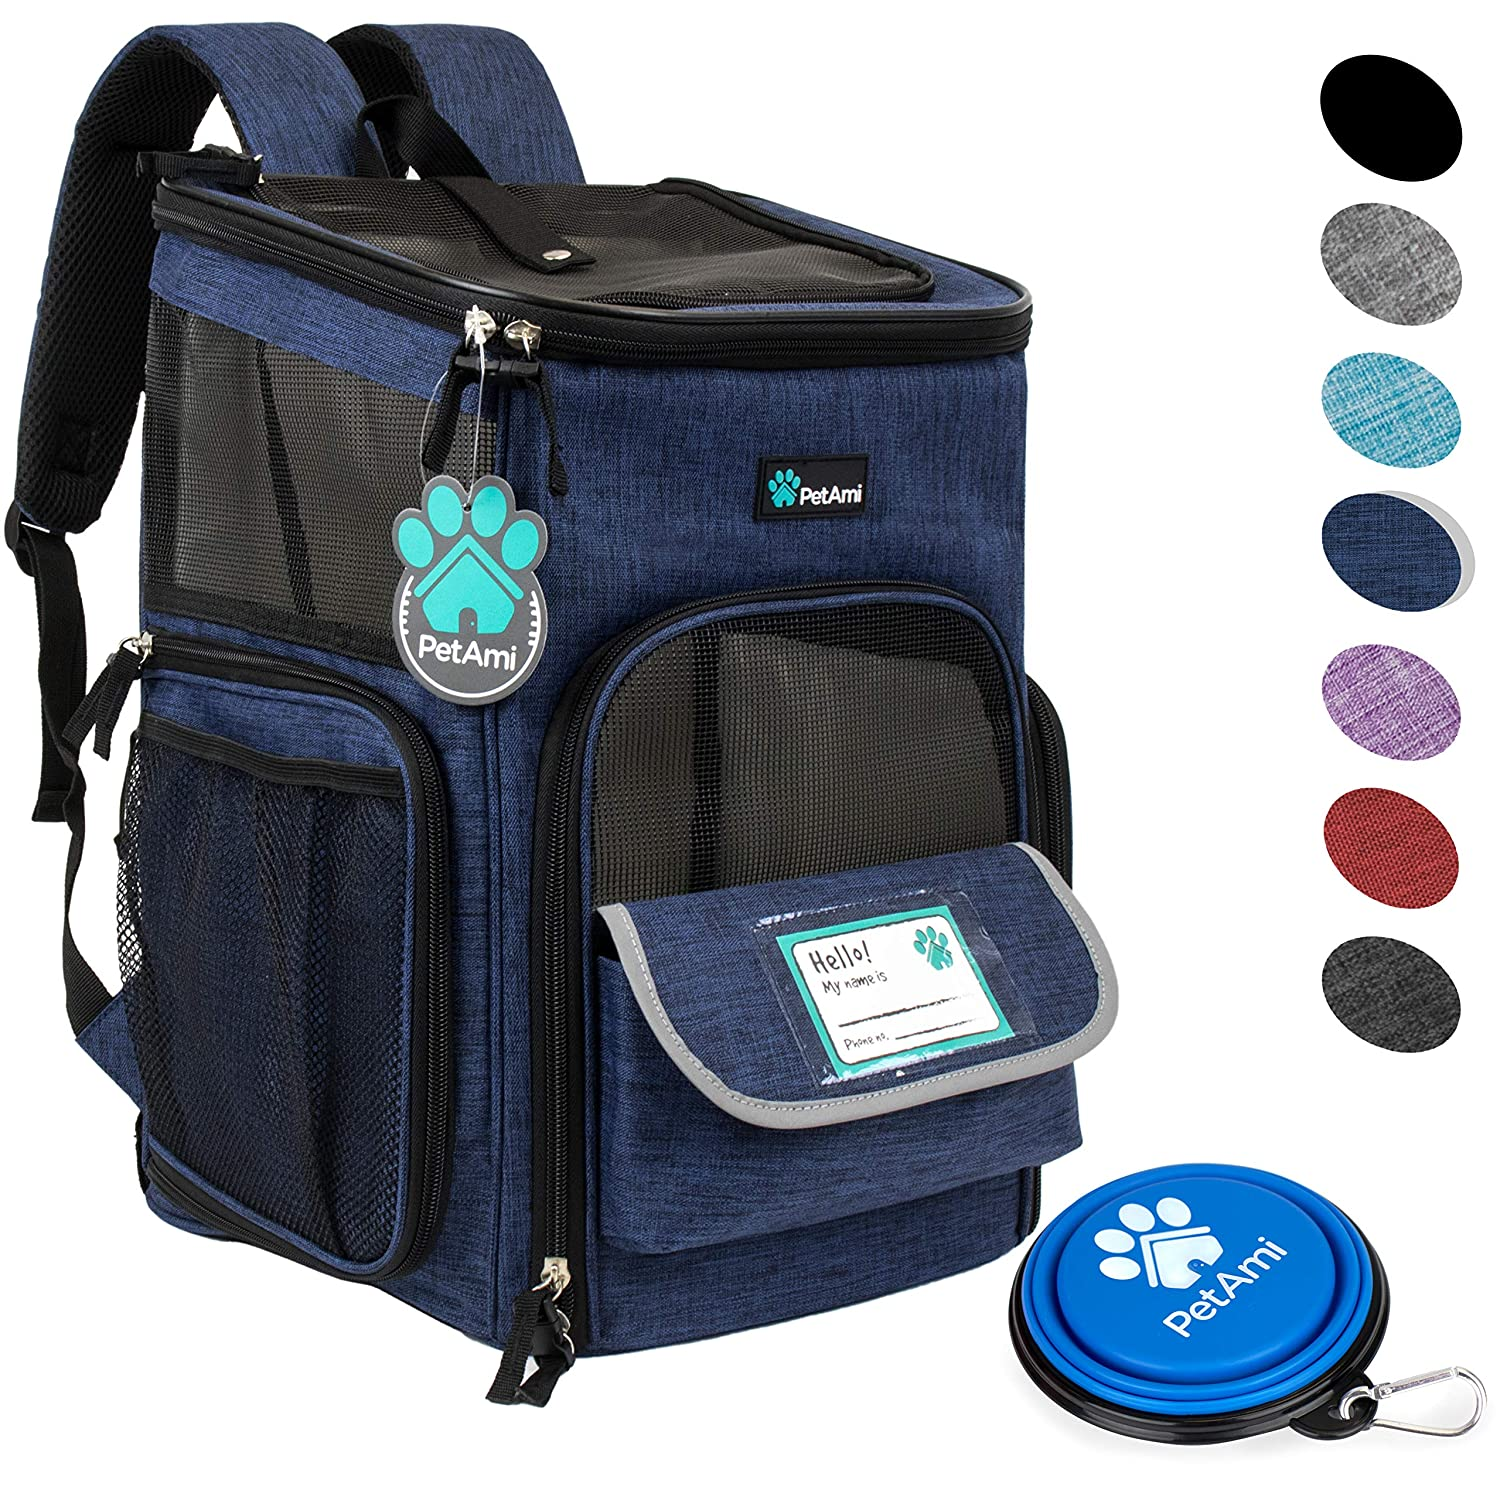 Navy One Size Navy One Size PetAmi Pet Carrier Backpack for Small Cats, Dogs, Puppies   Ventilated Structured Frame, 4 Way Entry, Safety and Soft Cushion Back Support   Collapsible for Travel, Hiking, Outdoor (Navy)